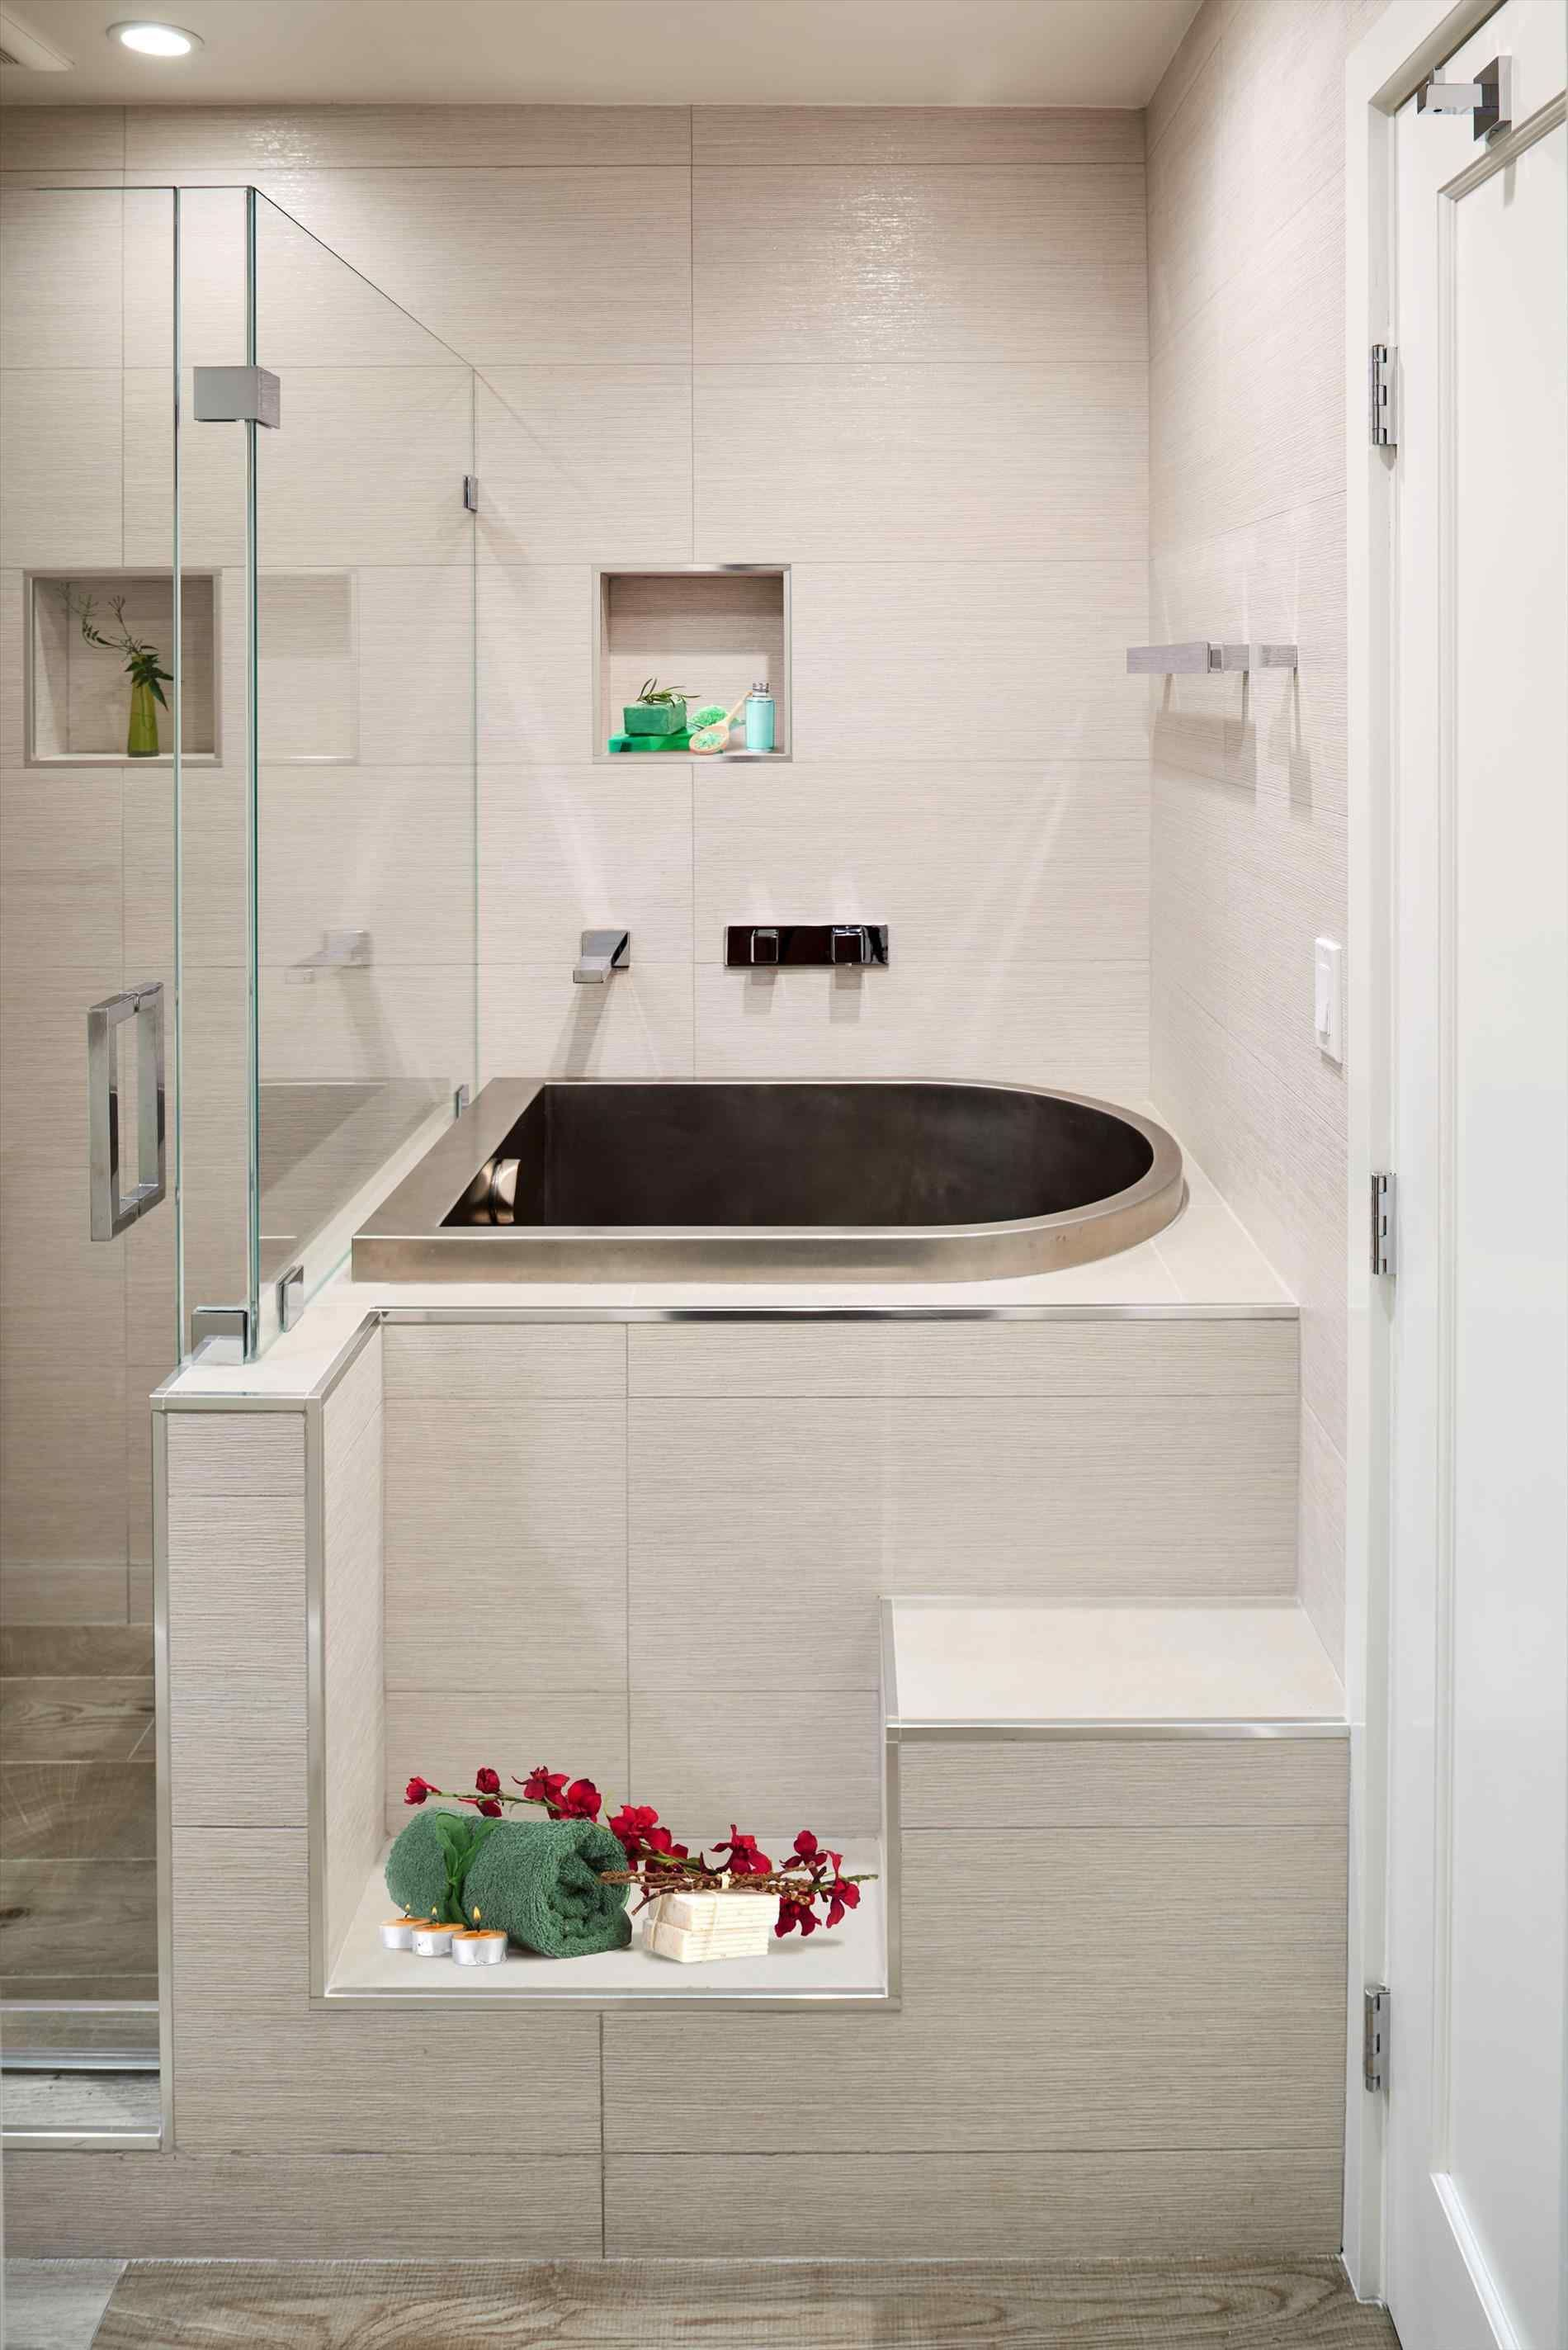 Incredible Japanese Tub Shower Combination Ideas - Tub Shower Combination,